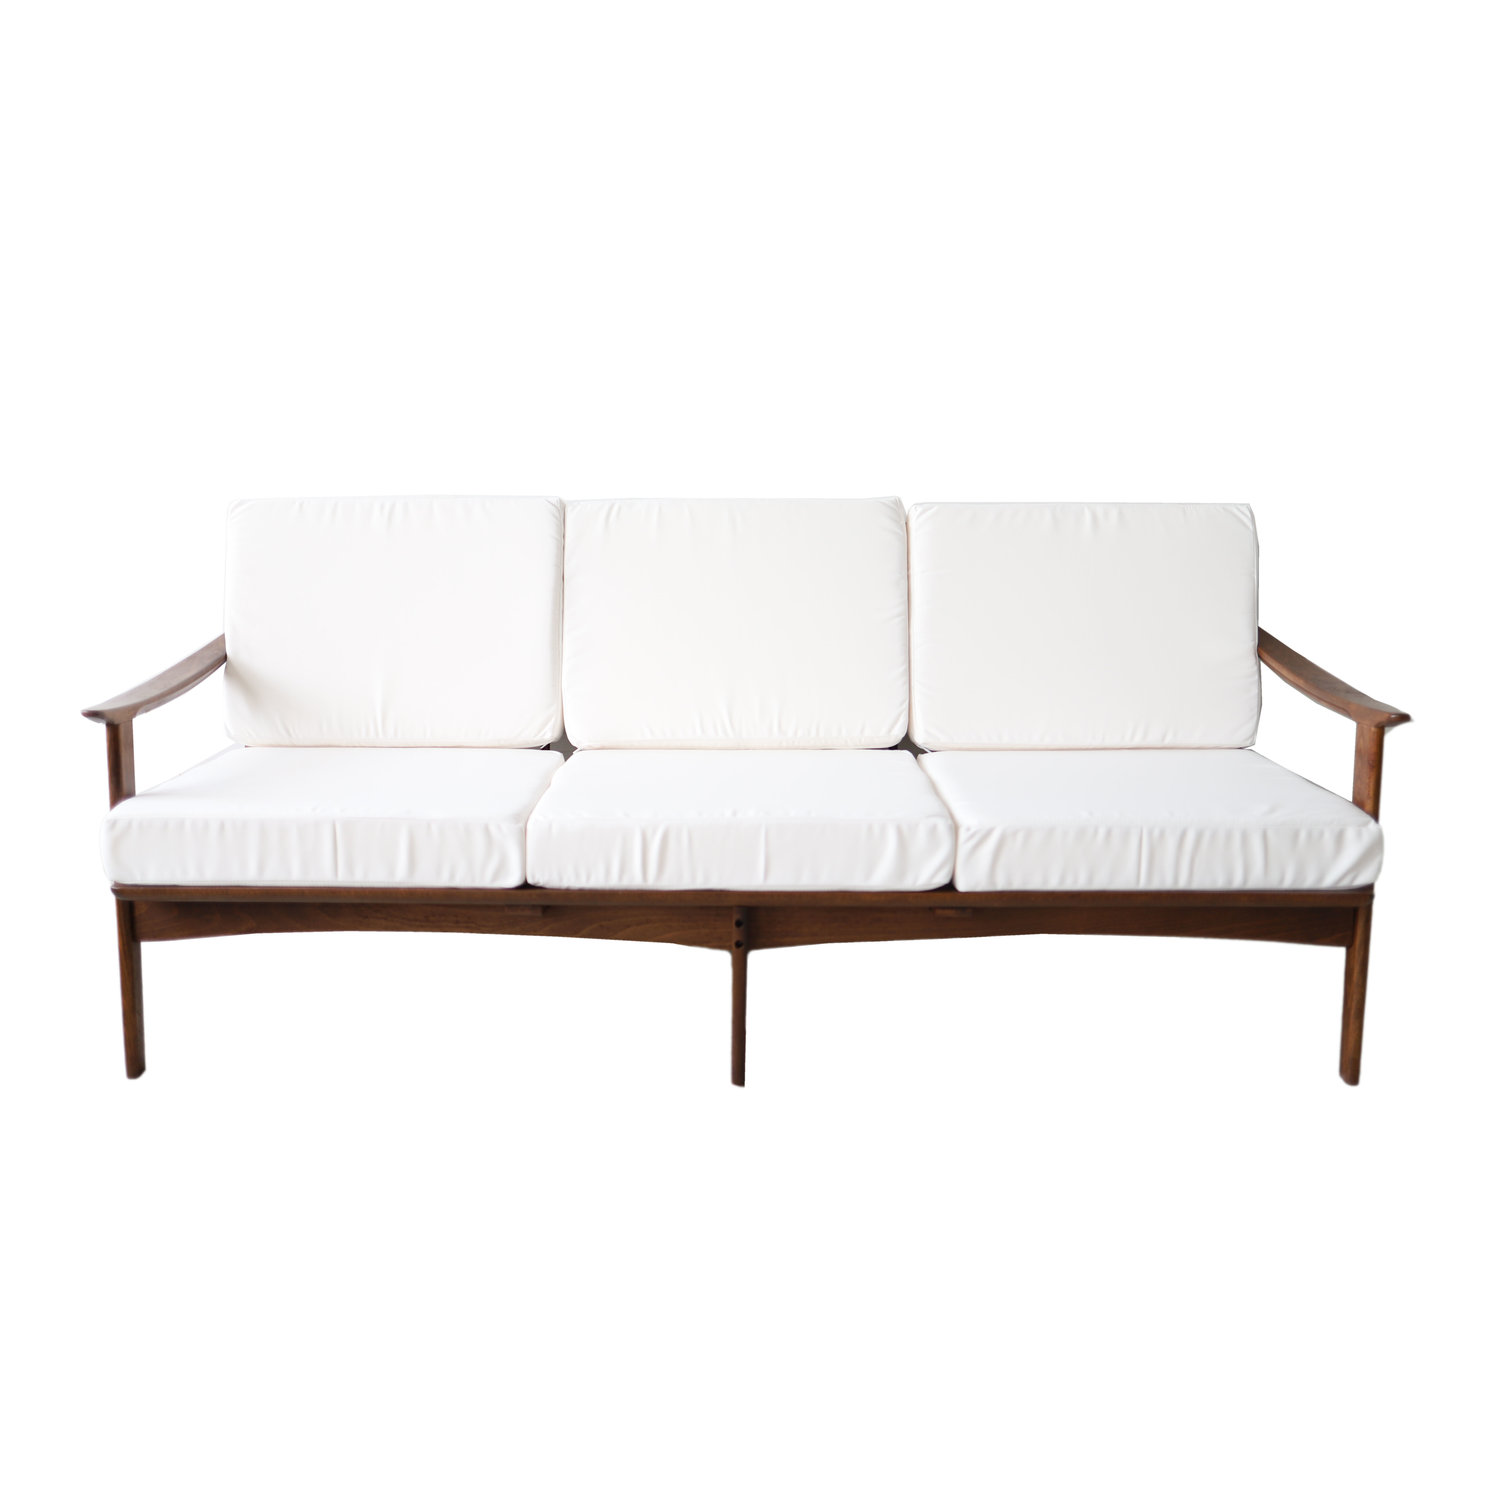 At 1st Sight - New Products - Vintage Mid Century Modern White ...